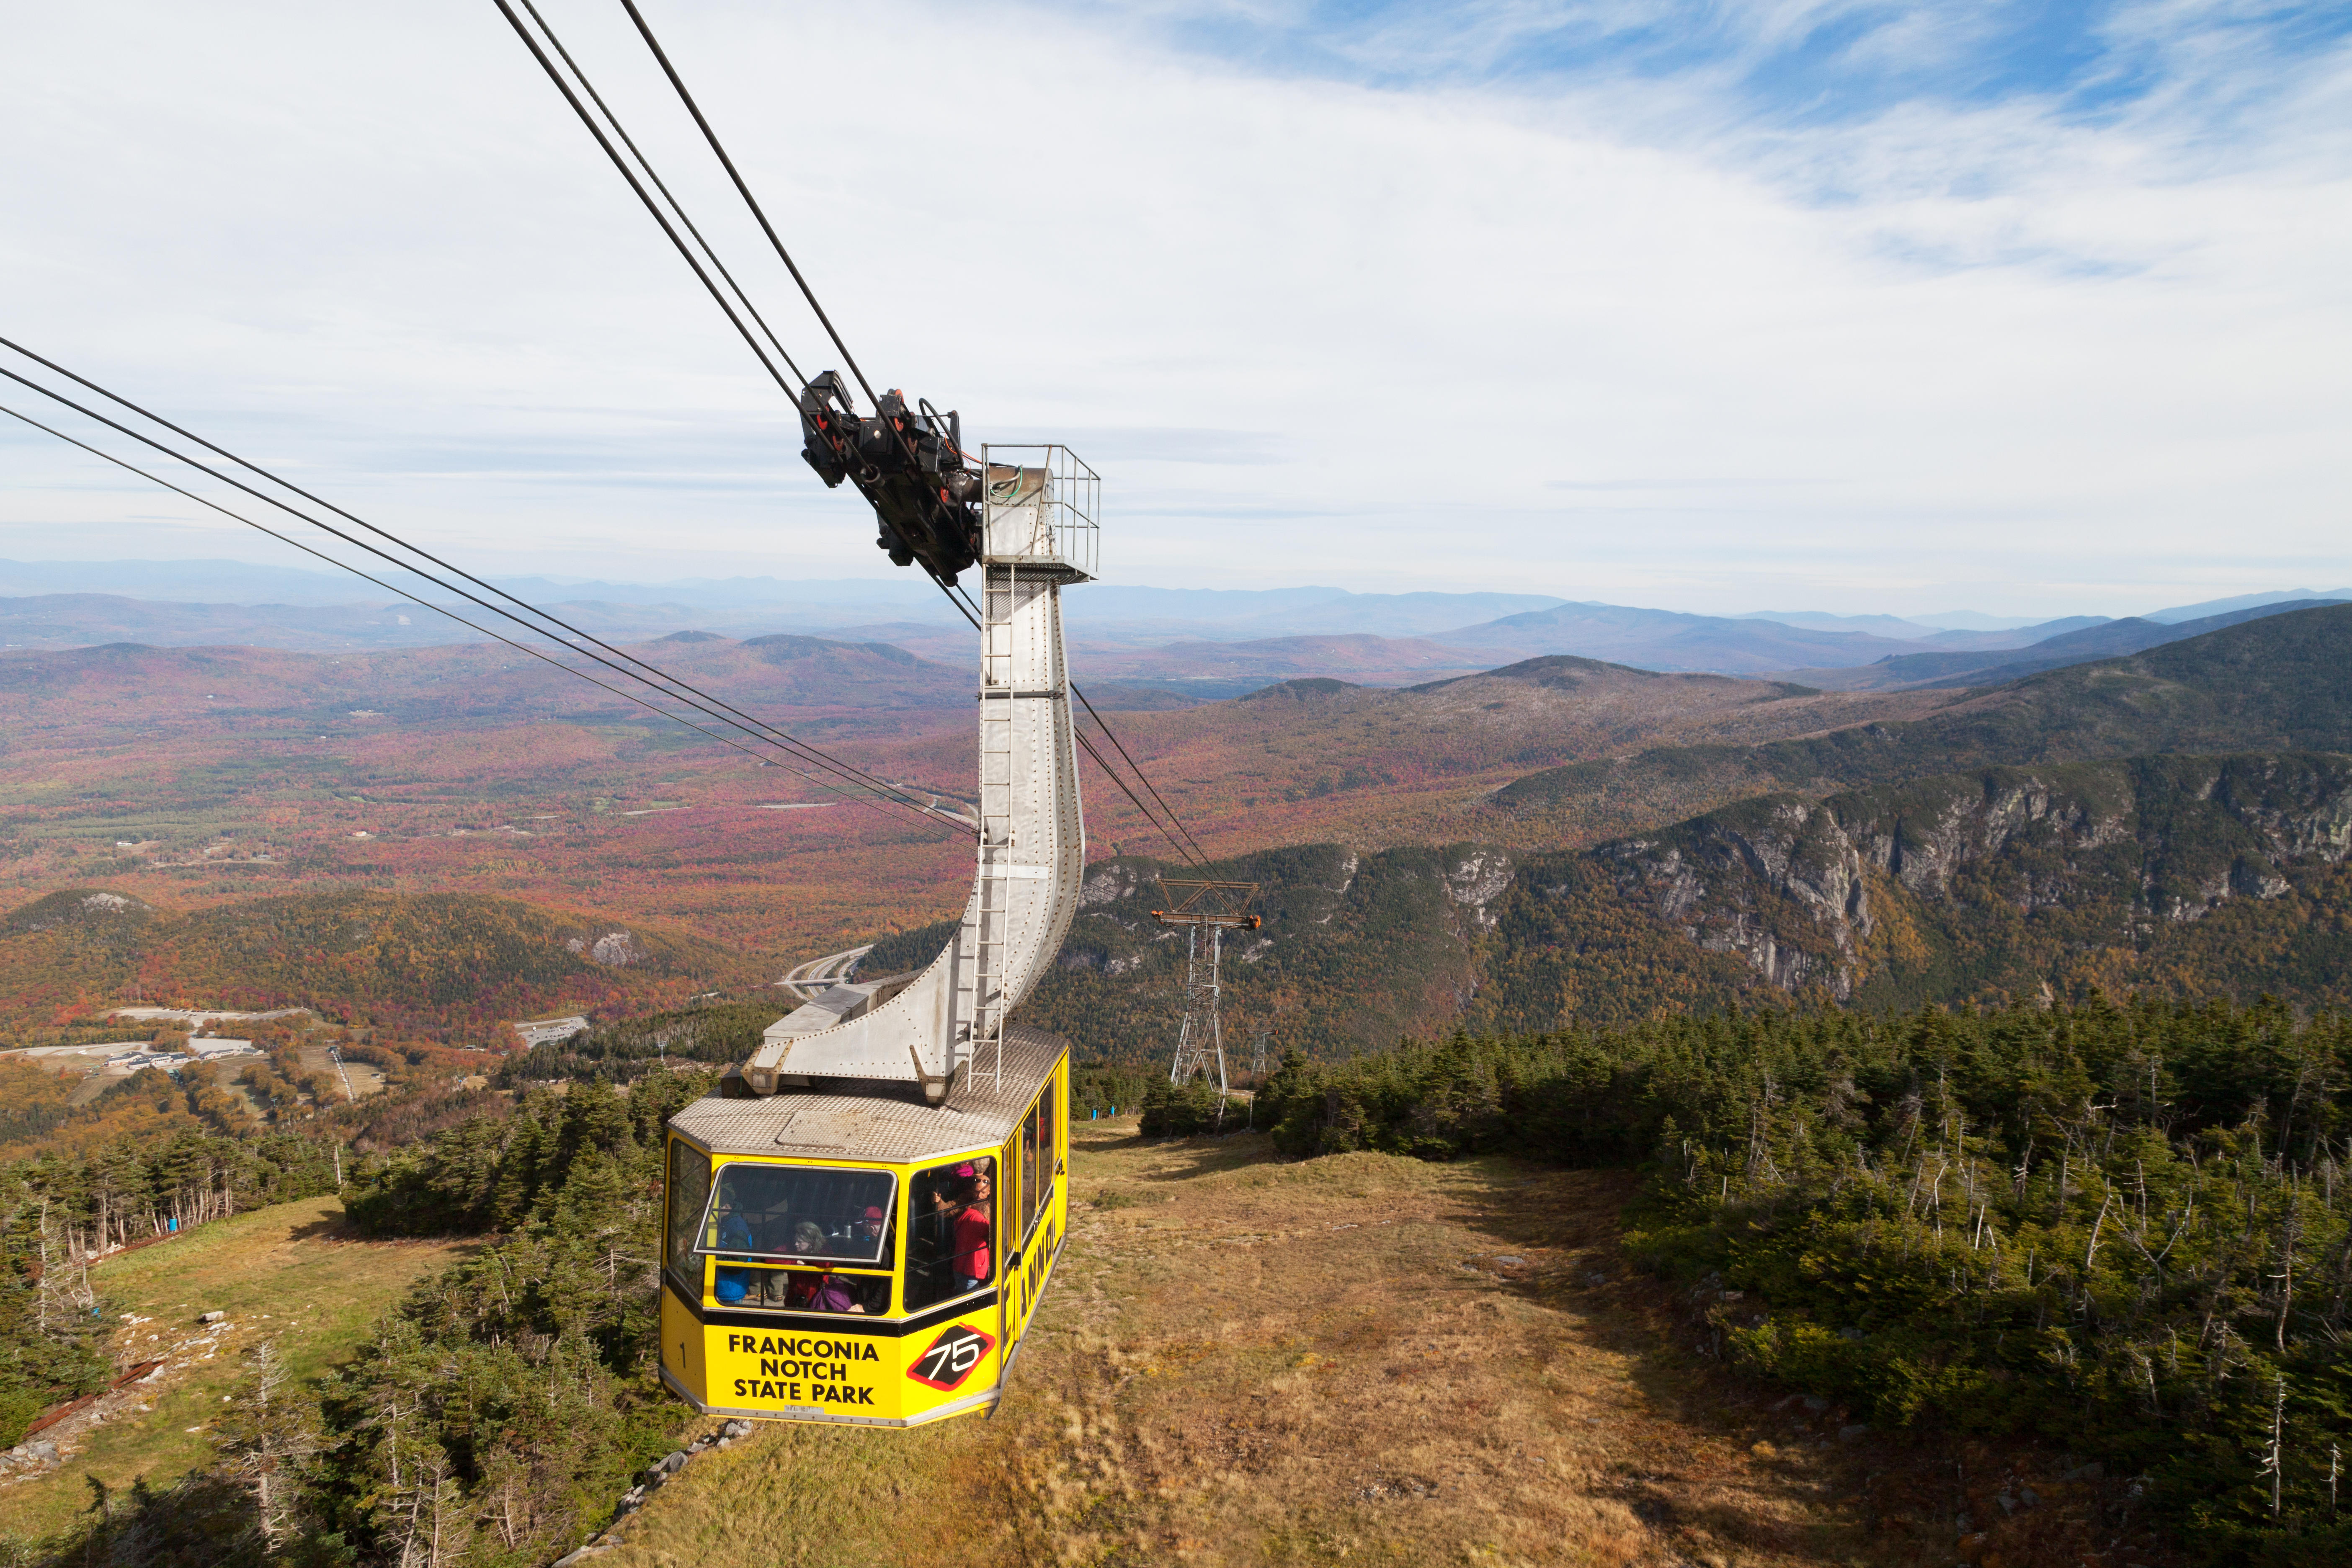 The Cannon Mountain Aerial Tramway or Cable Car, Franconia Notch State Park, White Mountains New Hampshire USA